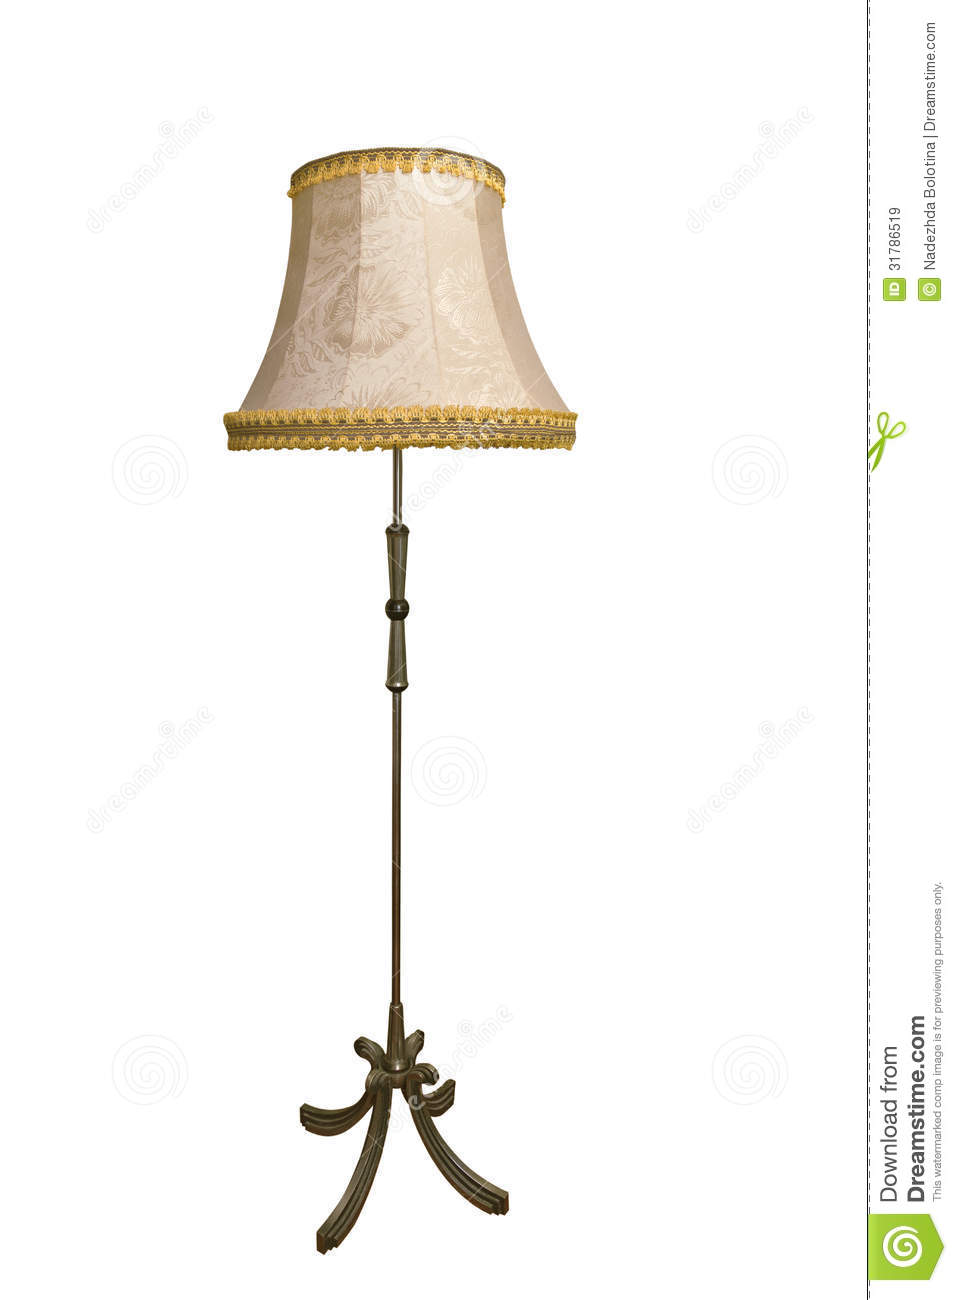 Tall Lamp Clipart.